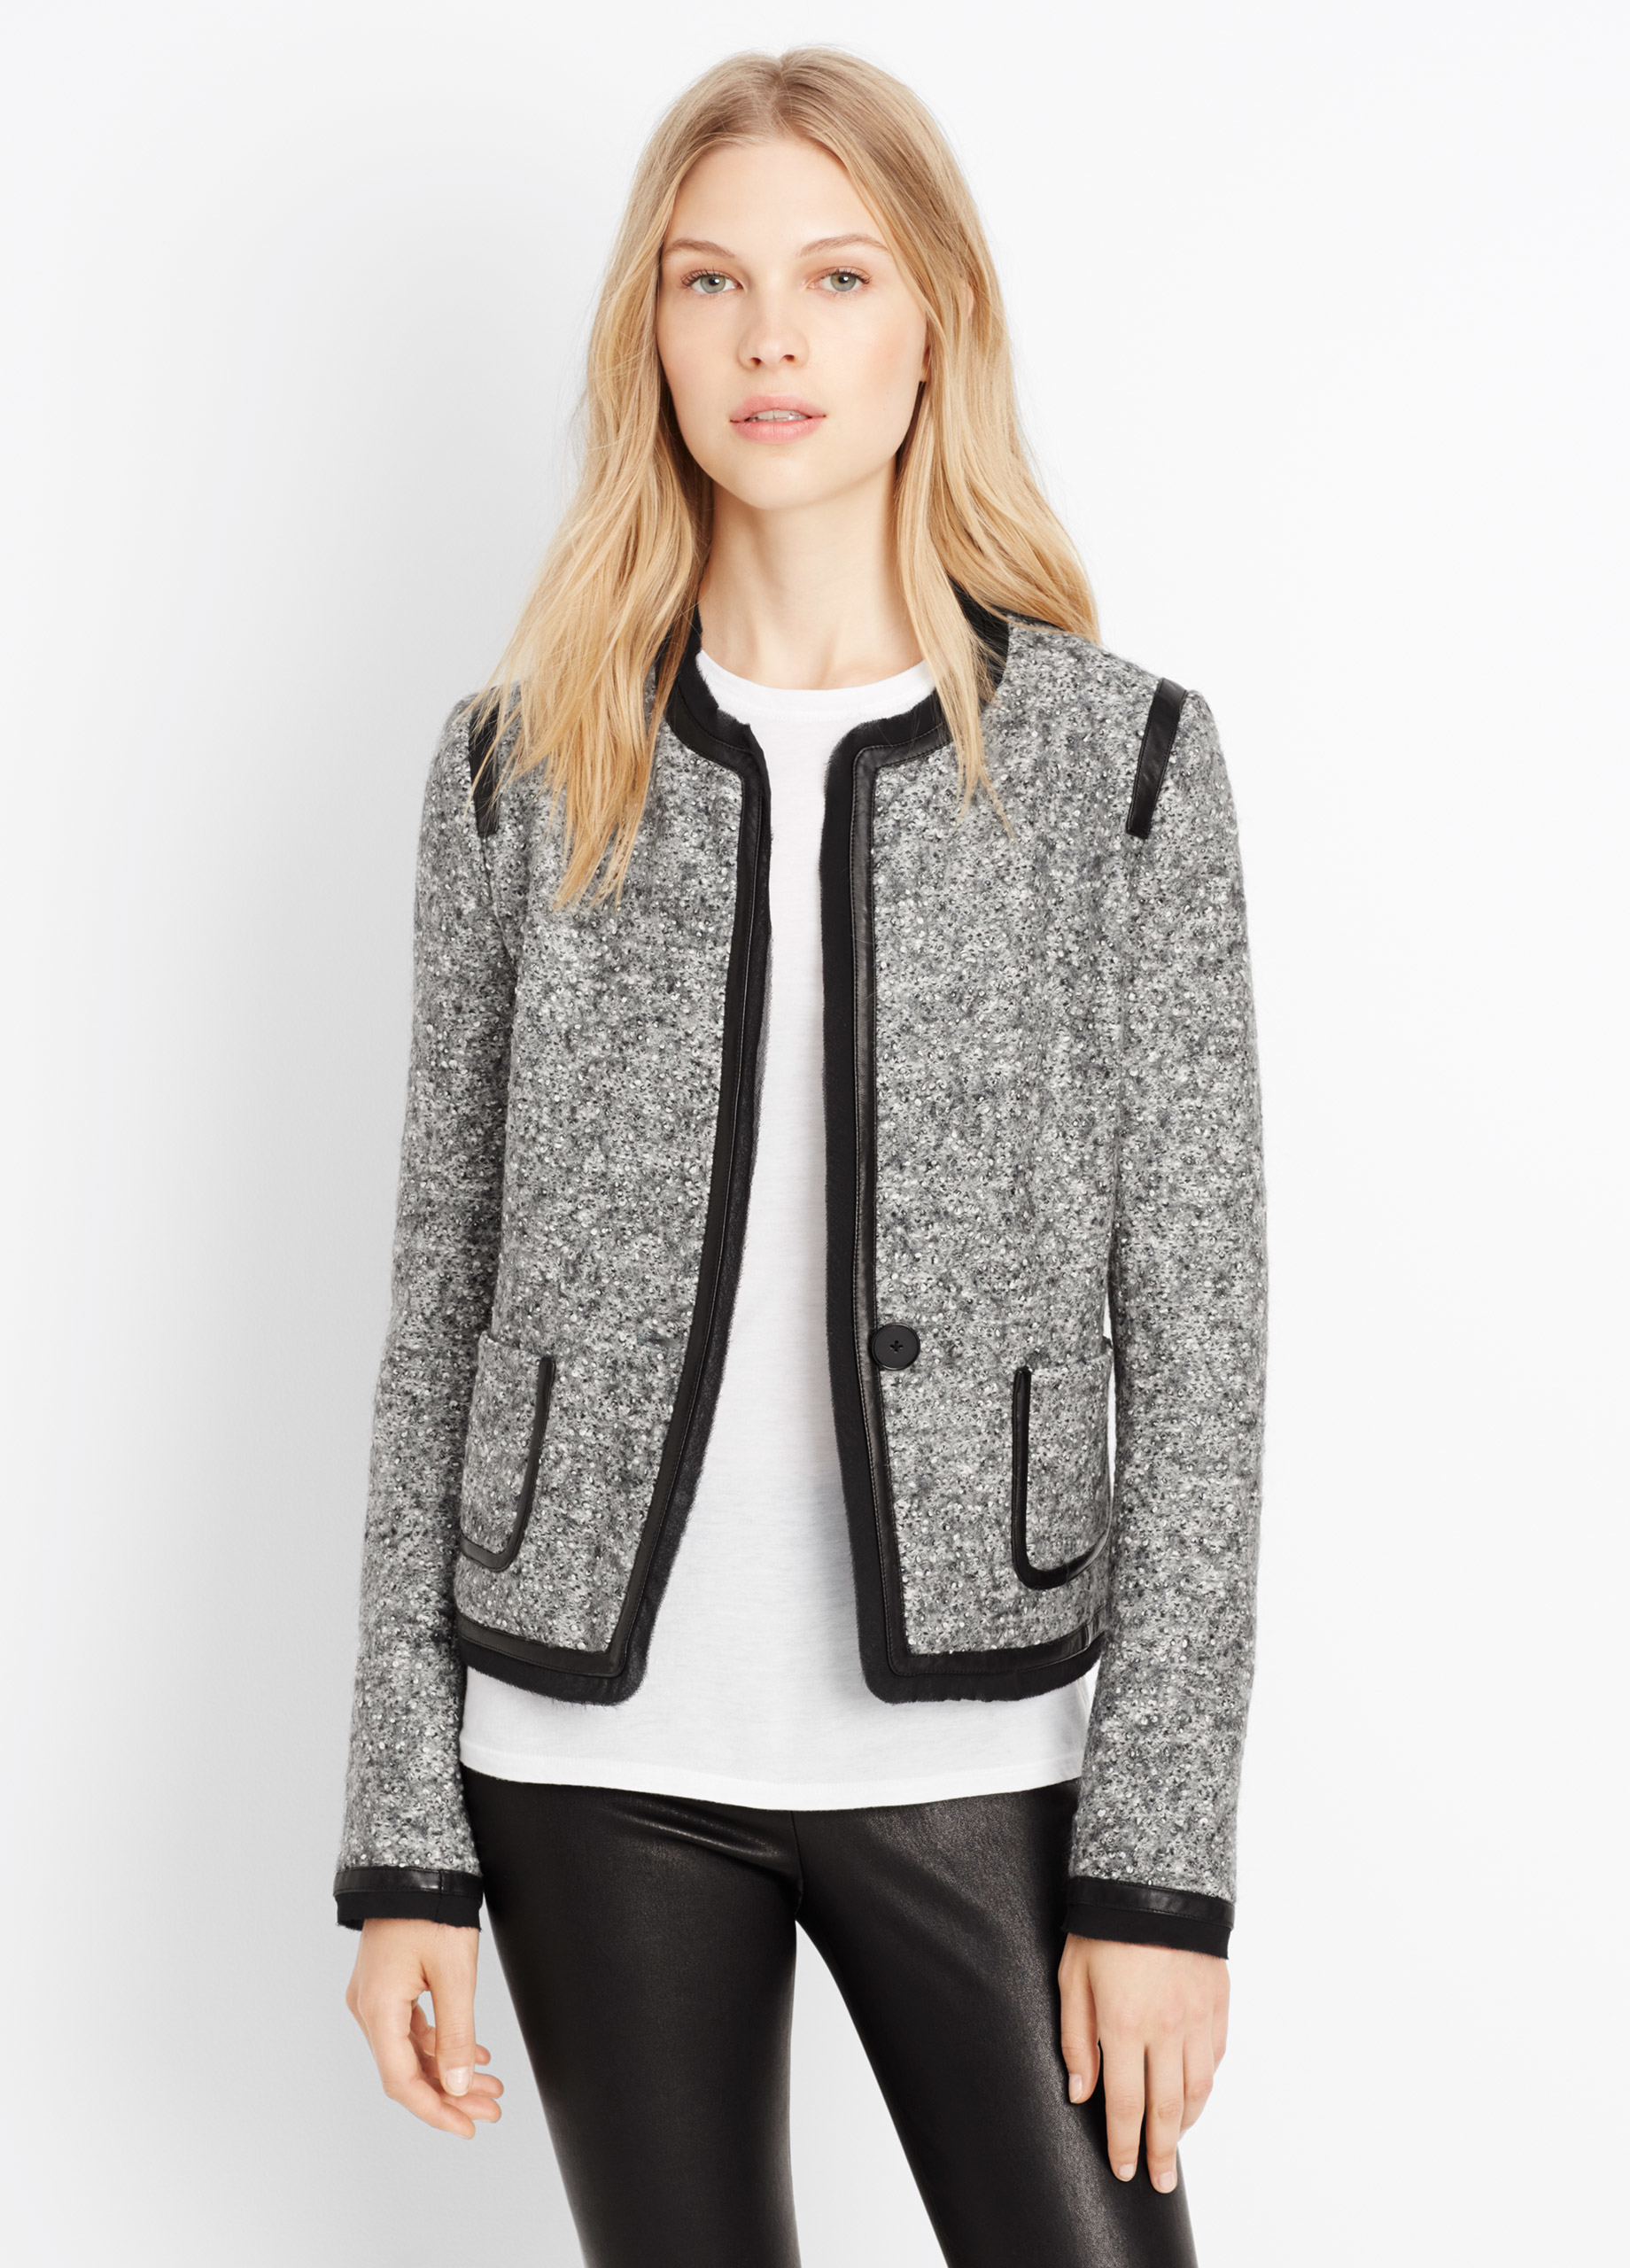 You searched for: boucle jacket! Etsy is the home to thousands of handmade, vintage, and one-of-a-kind products and gifts related to your search. No matter what you're looking for or where you are in the world, our global marketplace of sellers can help you find unique and affordable options. Let's get started!